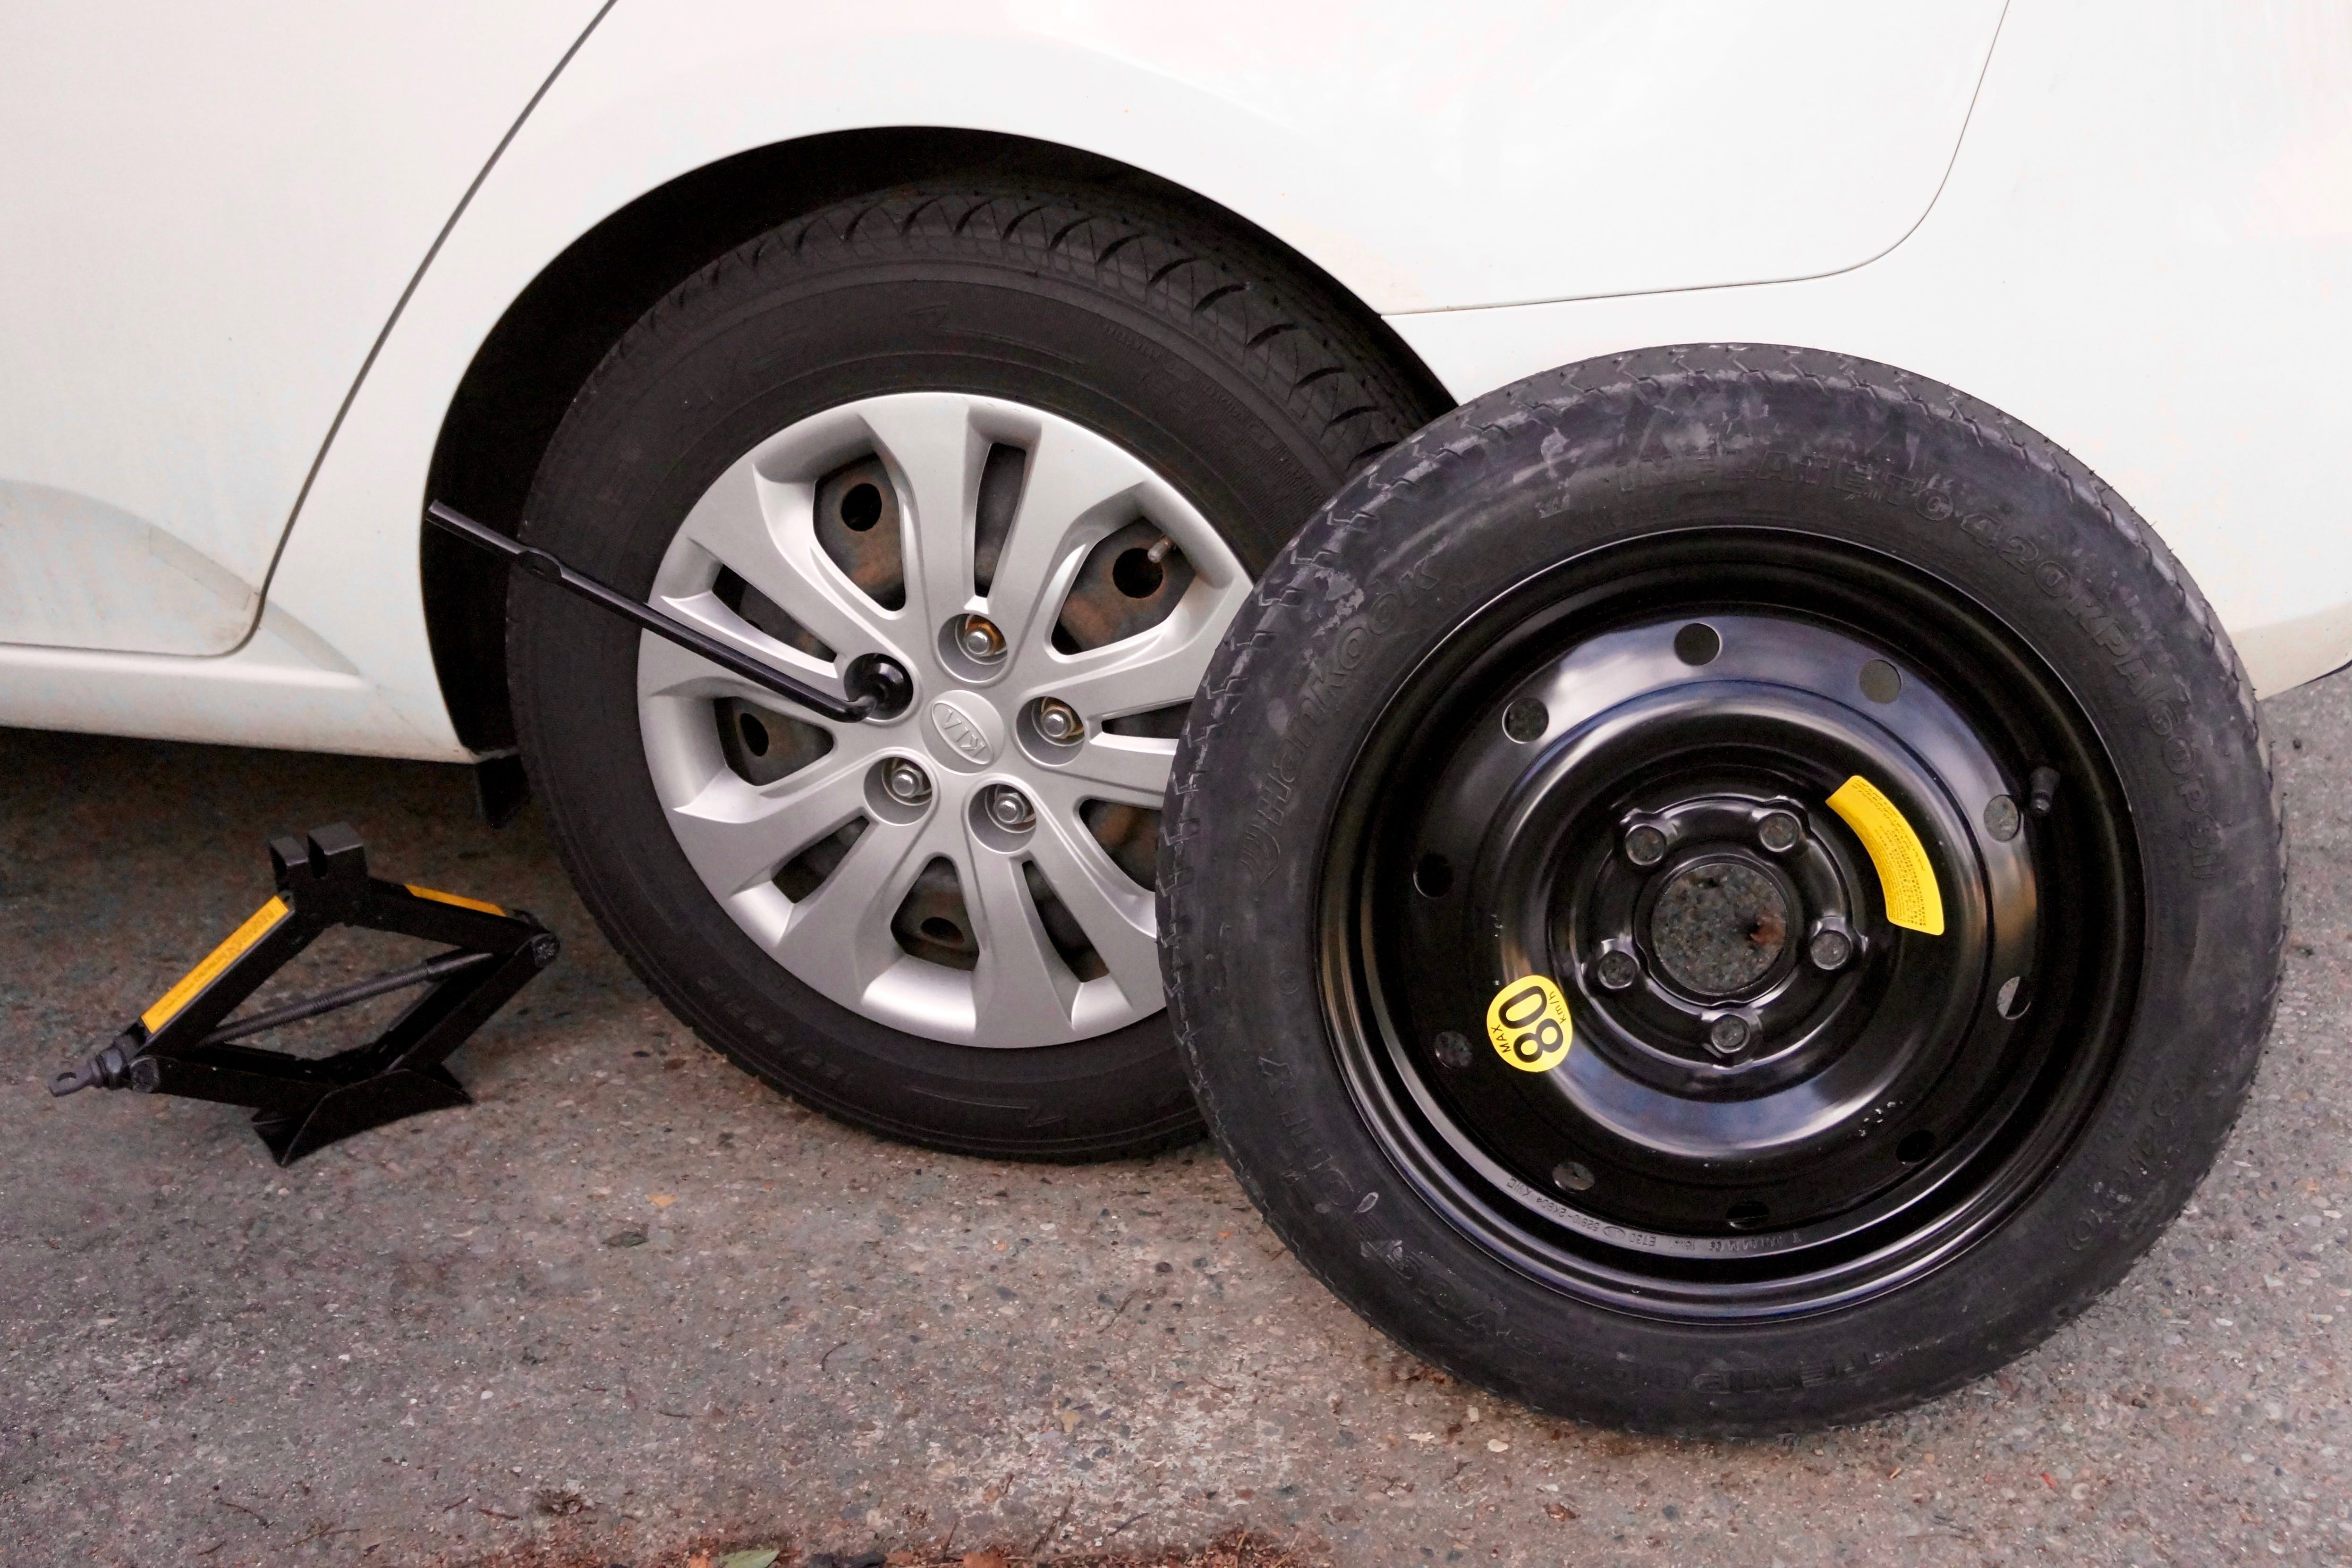 What Should I Do If I Get a Flat Tire?